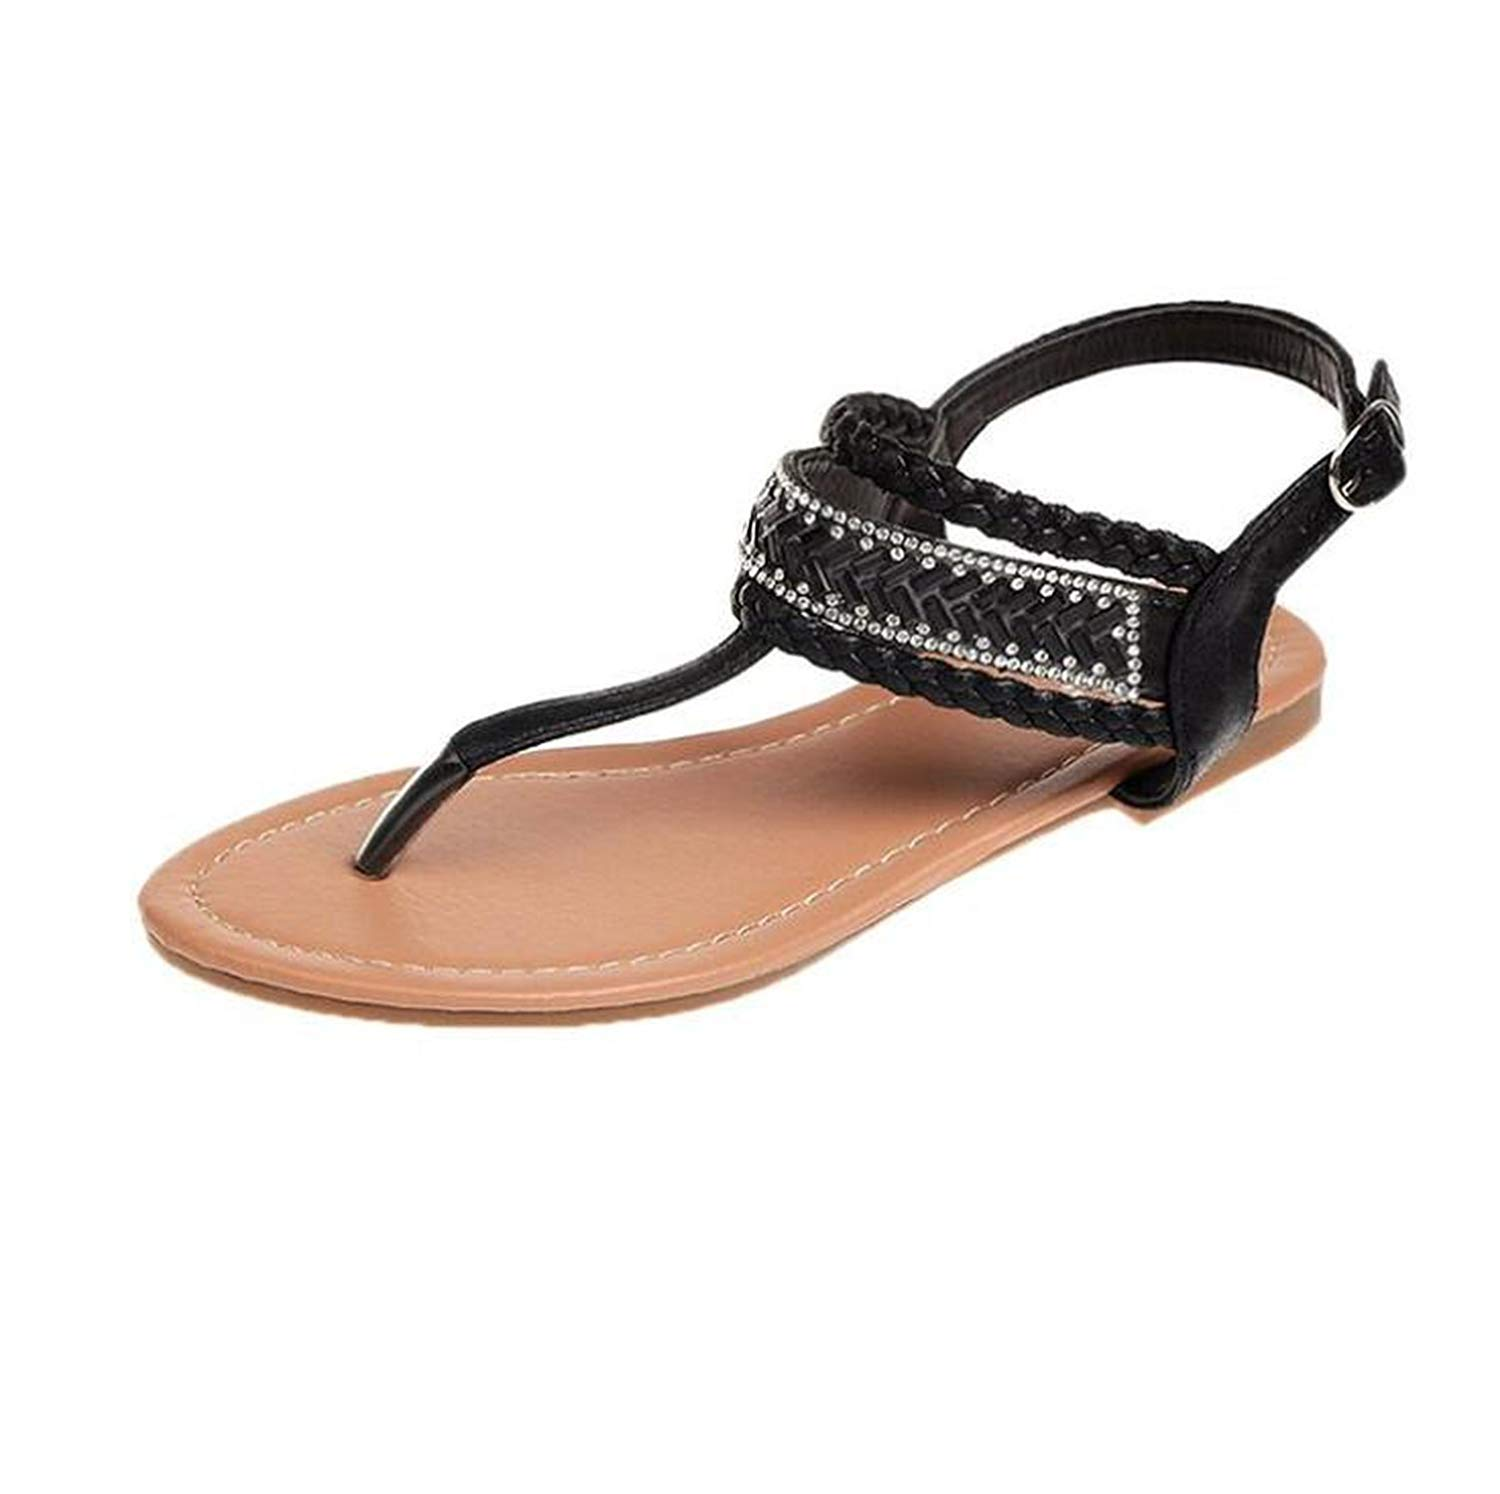 a5c511cad5fc6 Get Quotations · Kinggolder Sandals Flat Heel Summer Shoes Casual Leather  Thong Sandals Slip Resistance Women Crystal Flats Bohemia